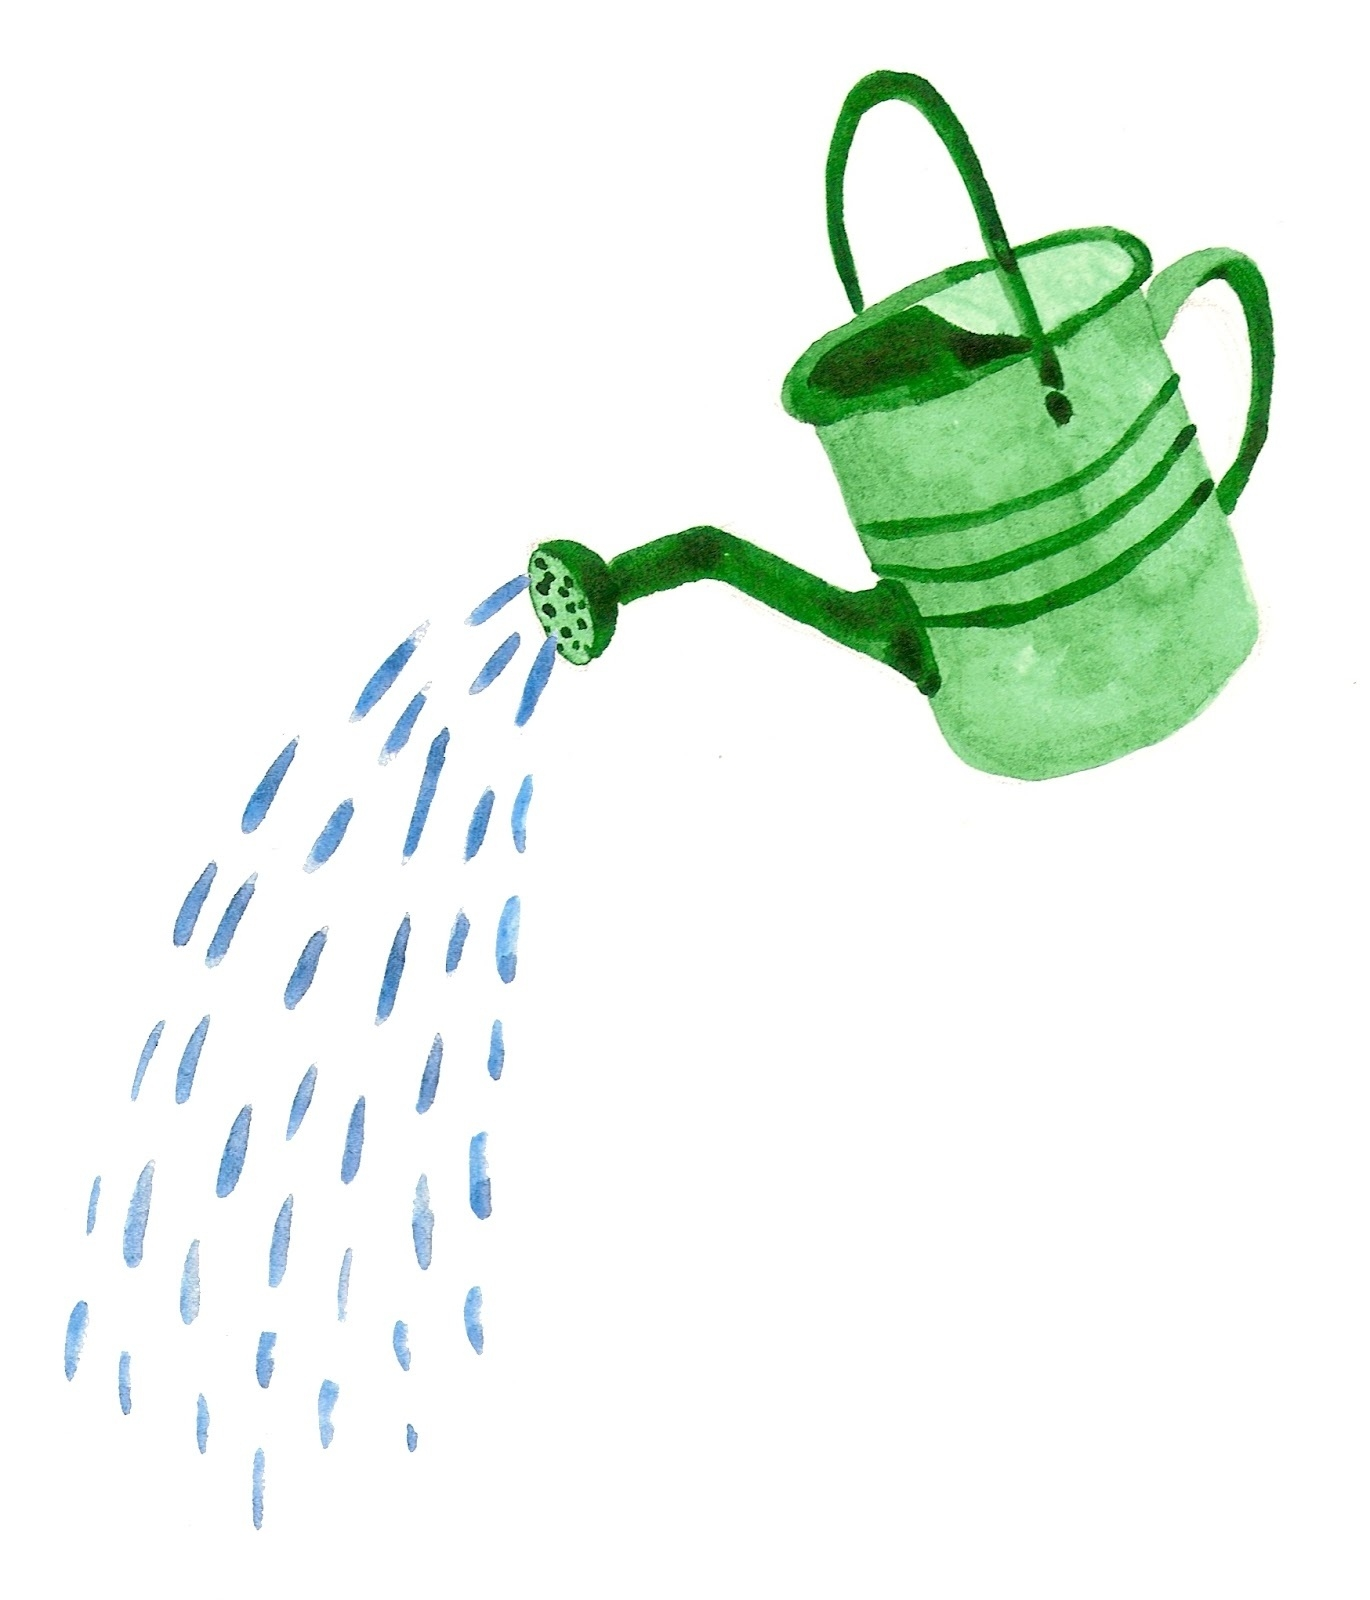 Watering can clipart Lovely Watering Can Pouring Water.